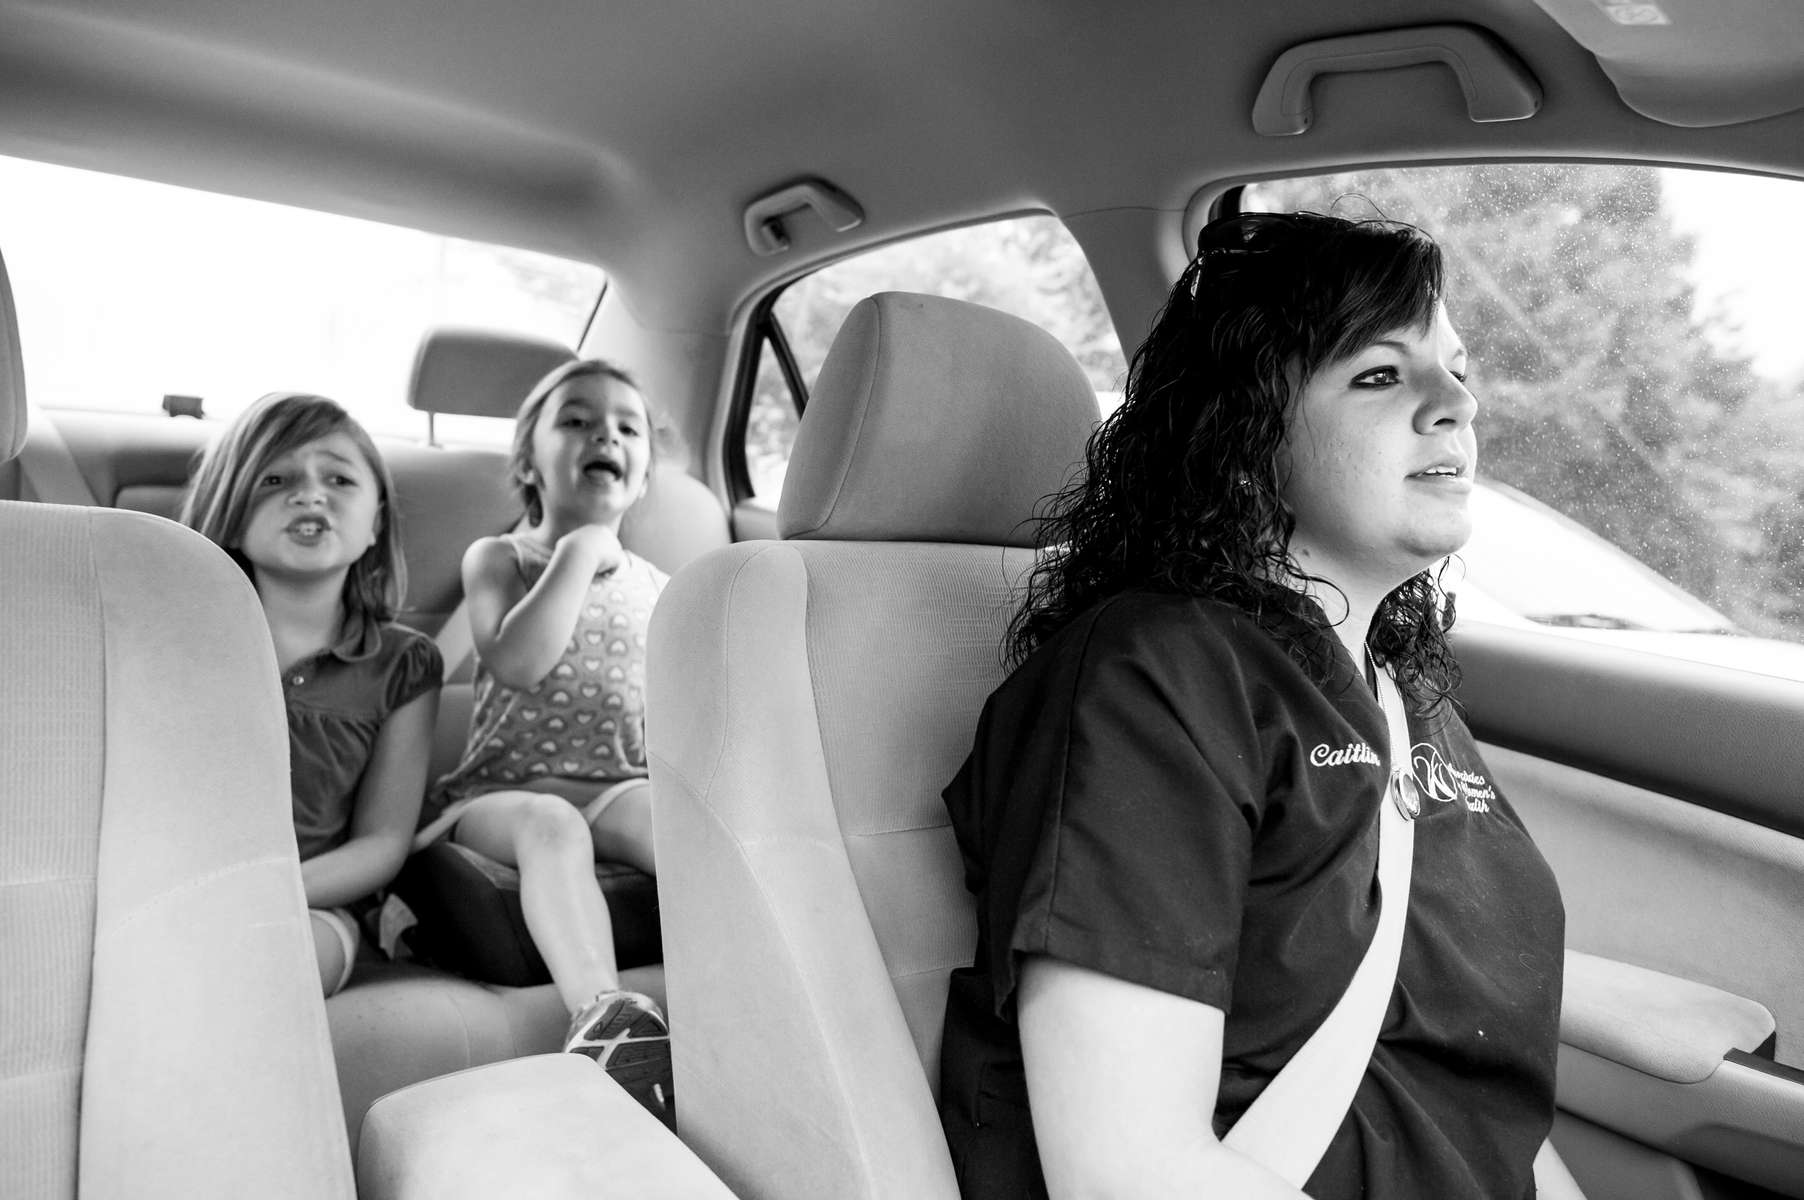 Caitlin Bell, along with daughters Zoey and Kessler McCarver on their way to the Chambliss Center for Children in Chattanooga, TN on August 21, 2013.